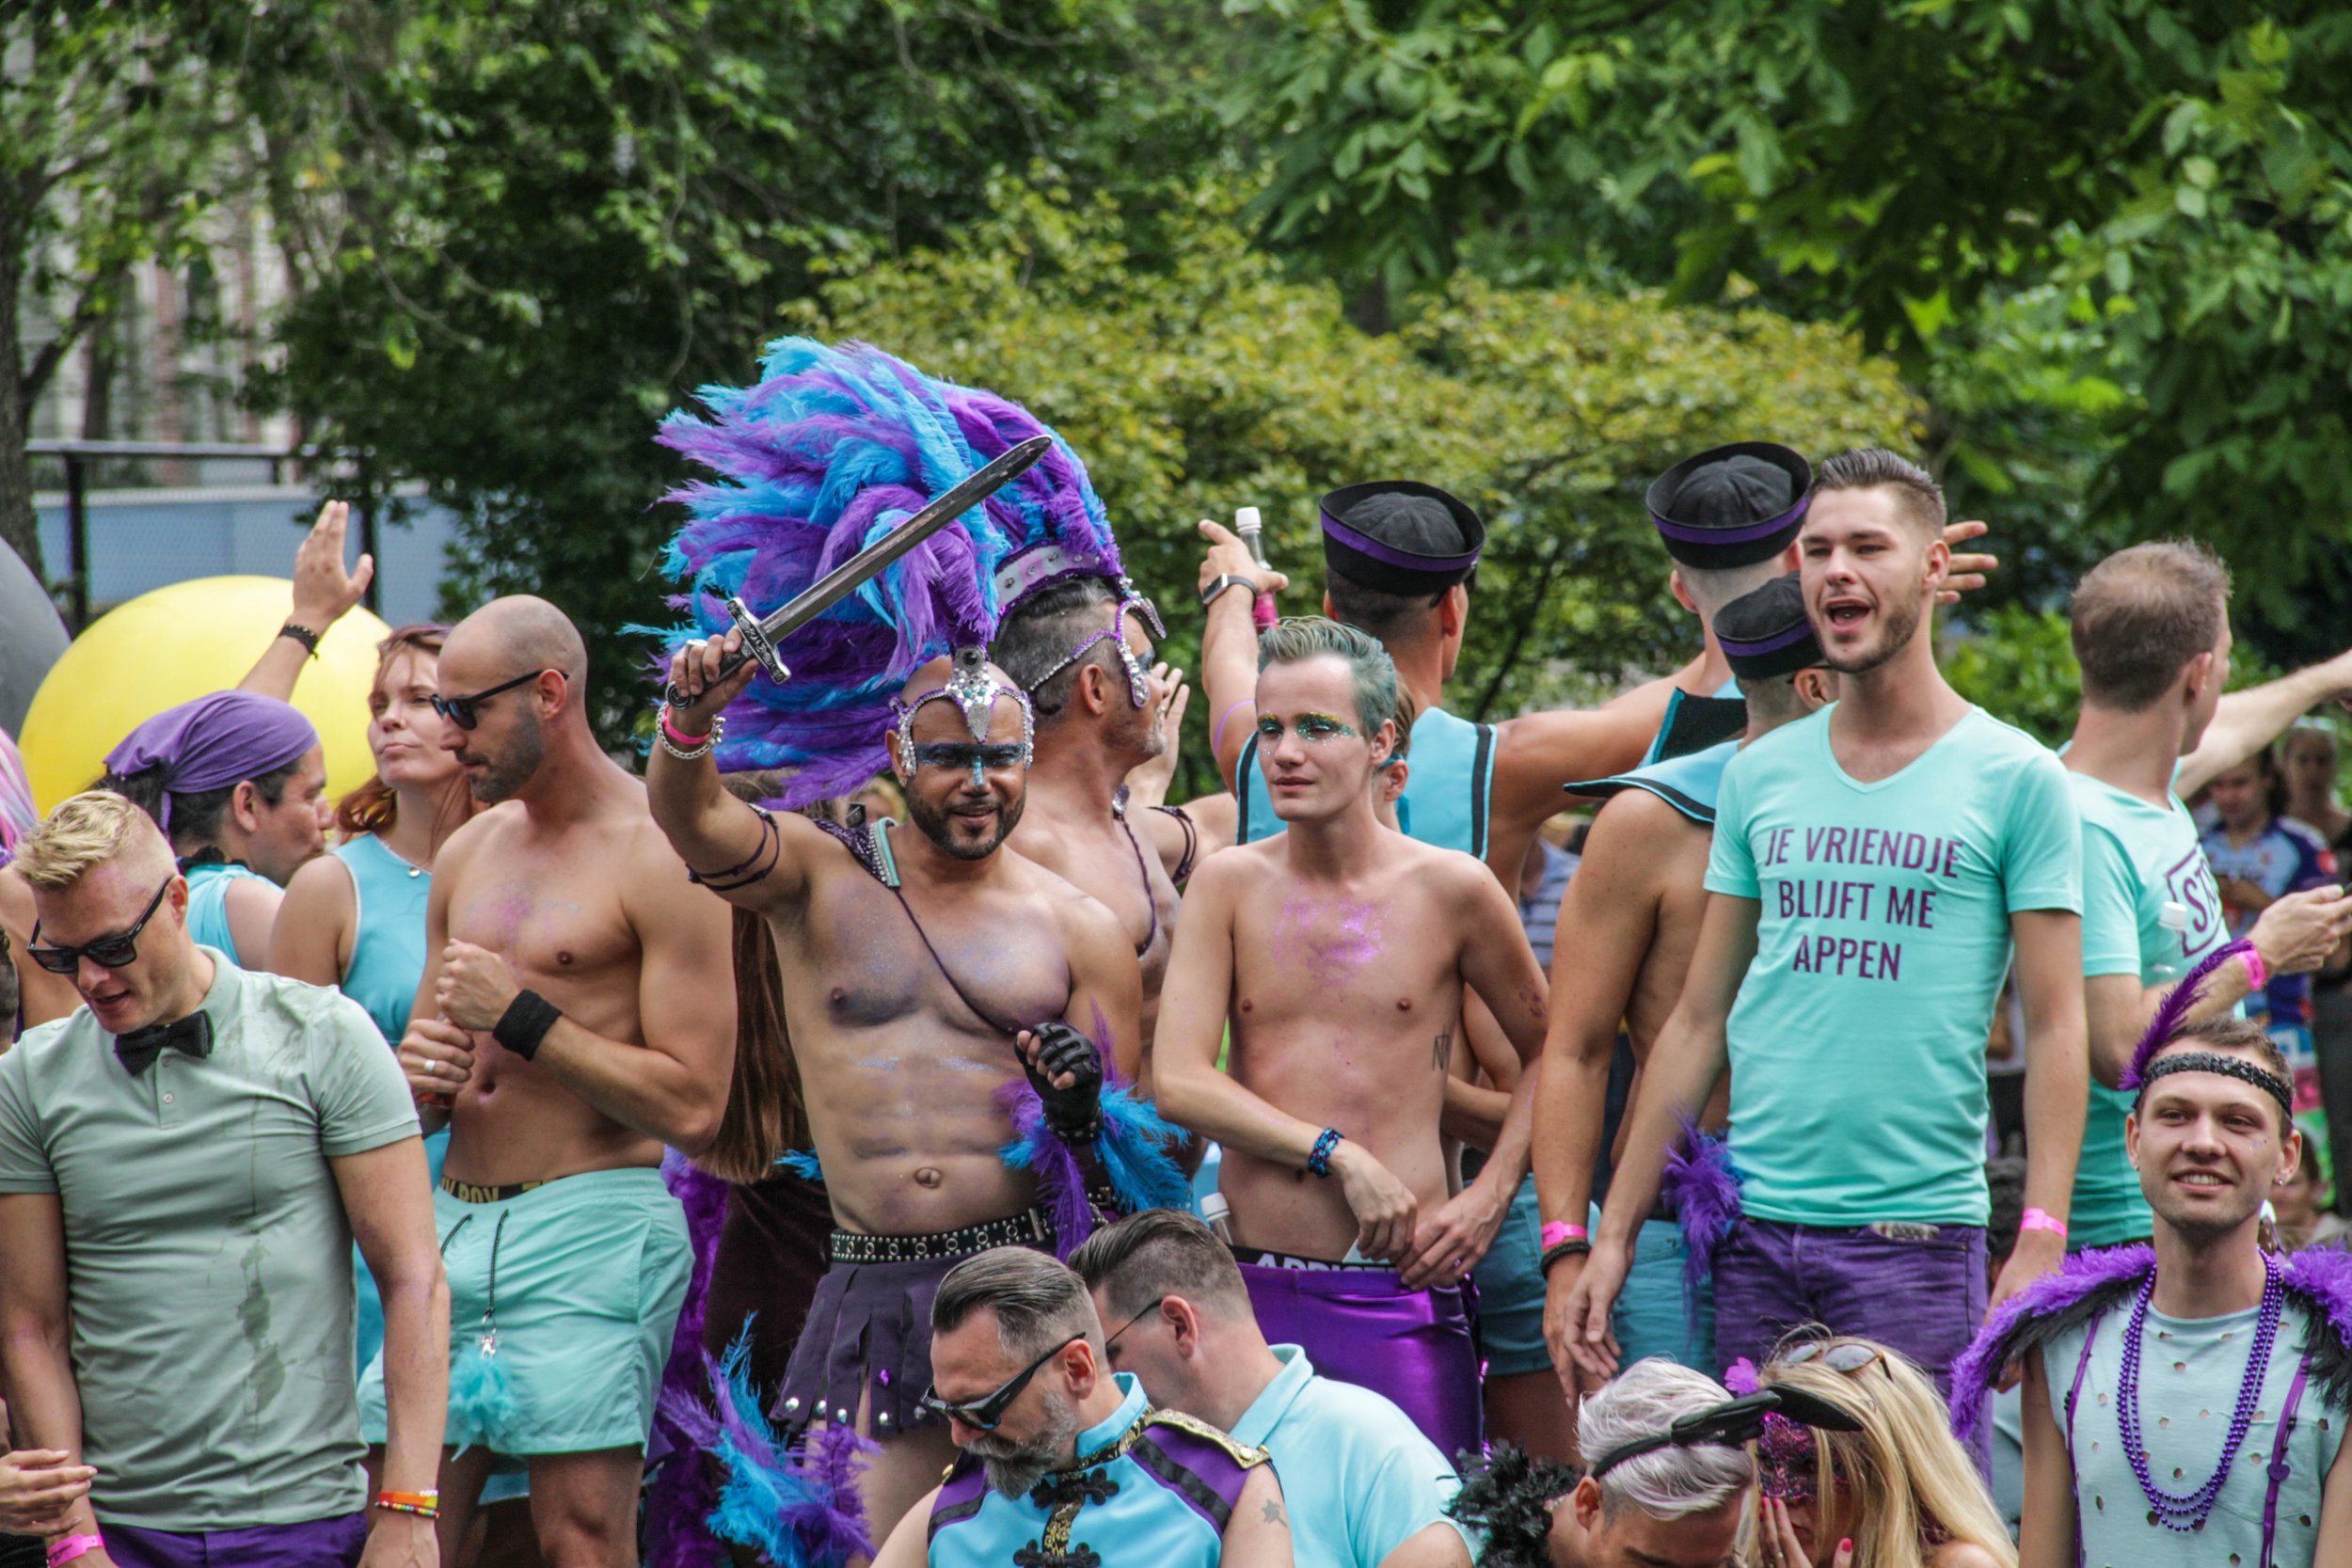 Amsterdam, Netherlands – August 5, 2017 - Gay Festival - Man w